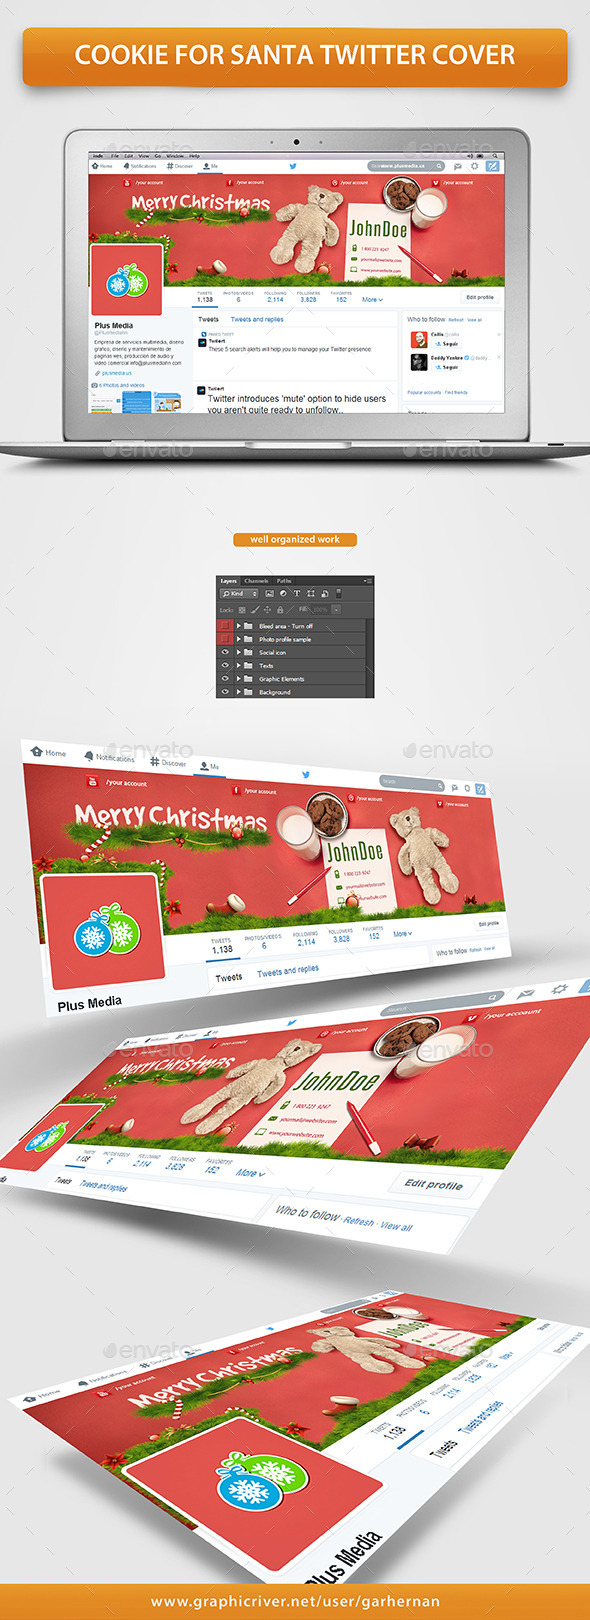 GraphicRiver Cookie For Santa Twitter Cover 9682518